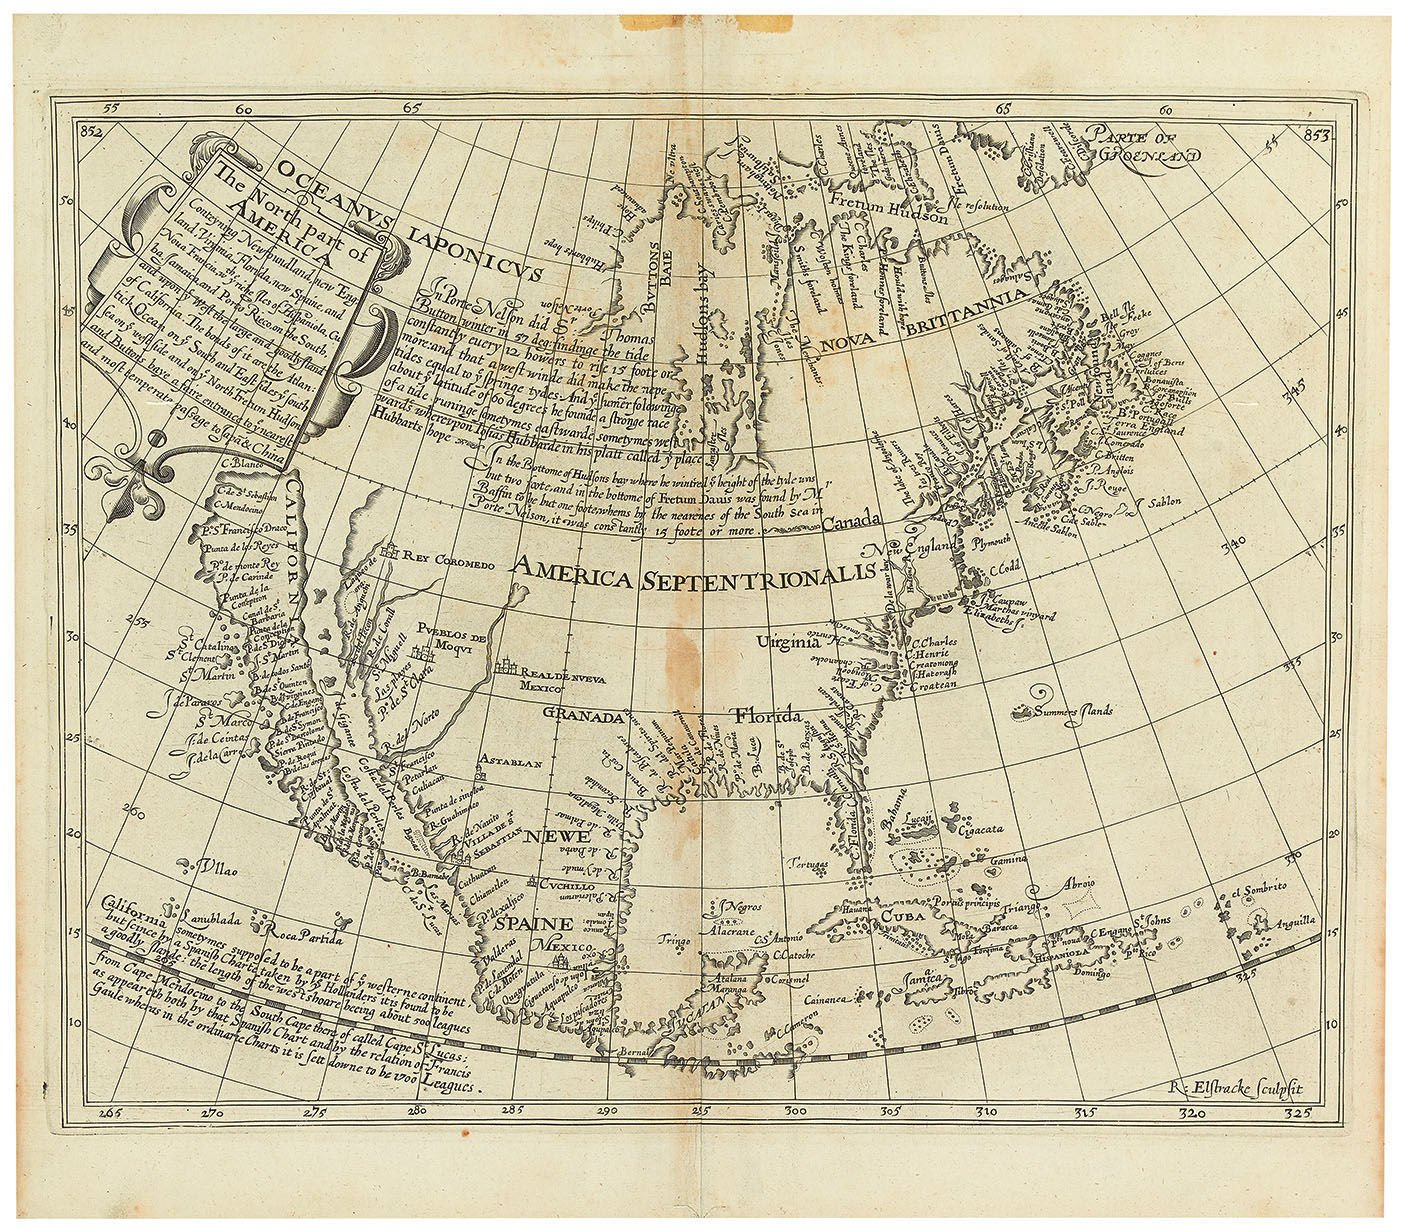 Early 17th century map among first to show California as island